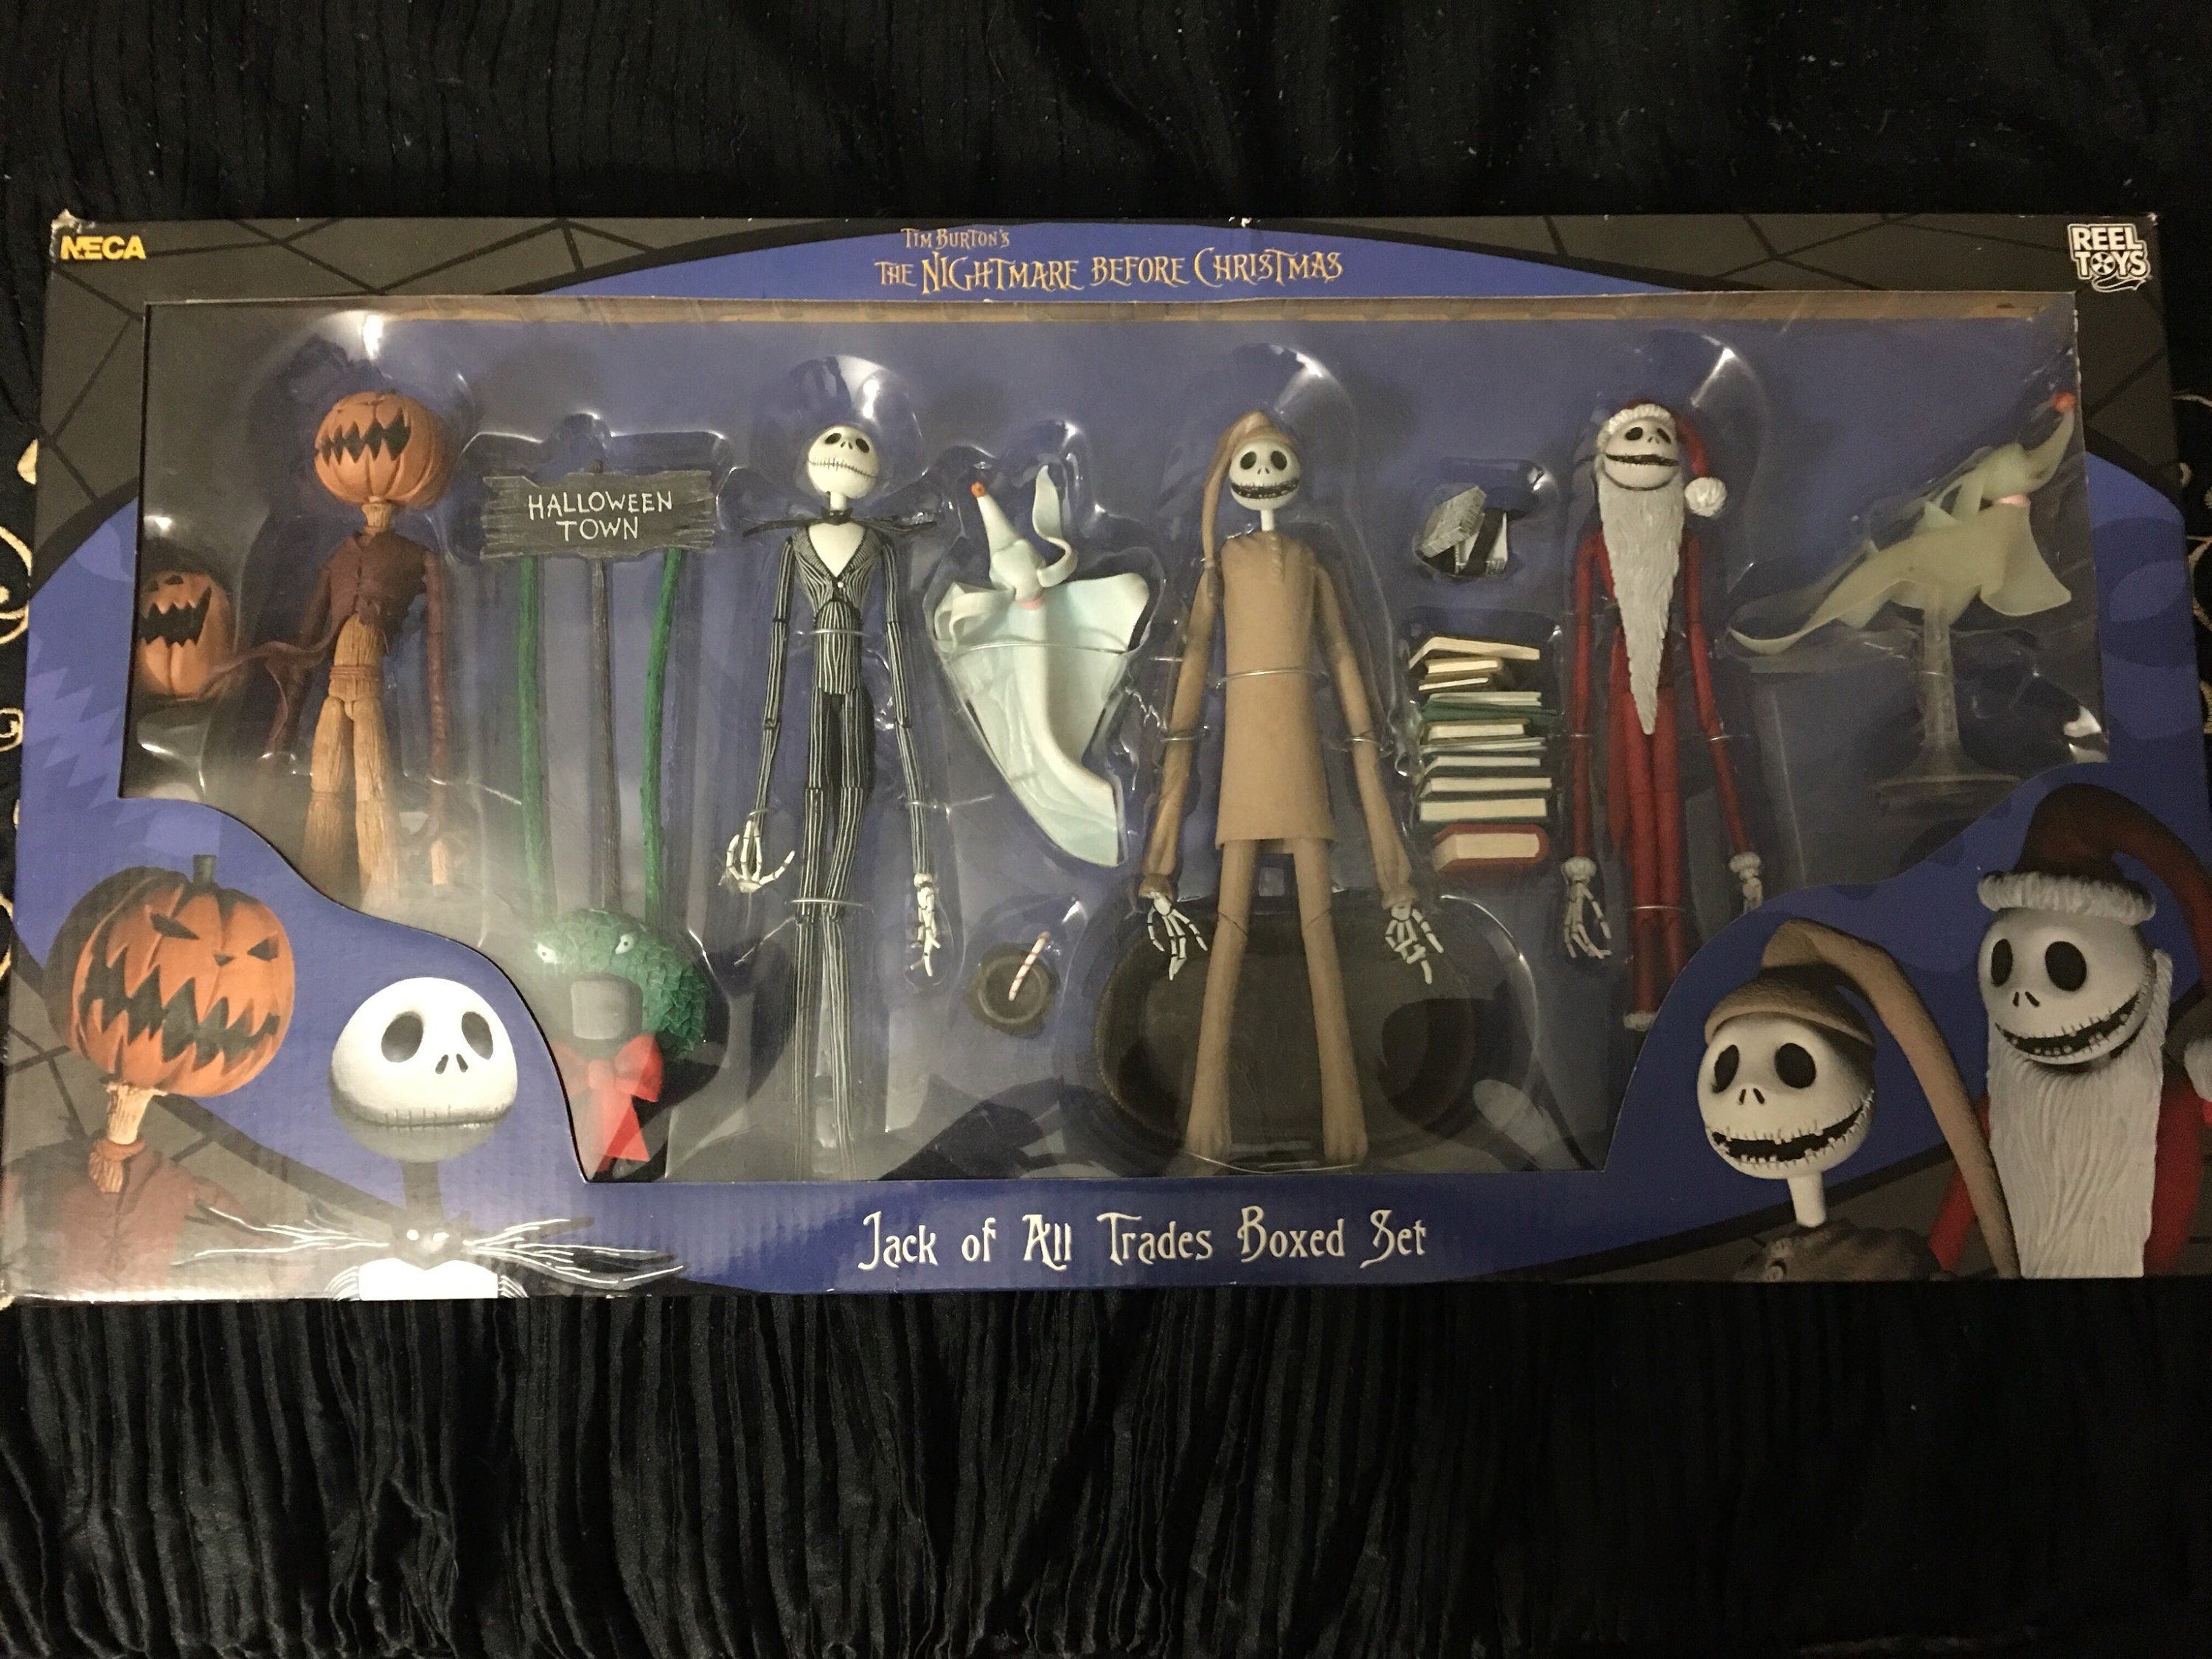 Nightmare Before Christmas Jack of all trades box aet | Etsy